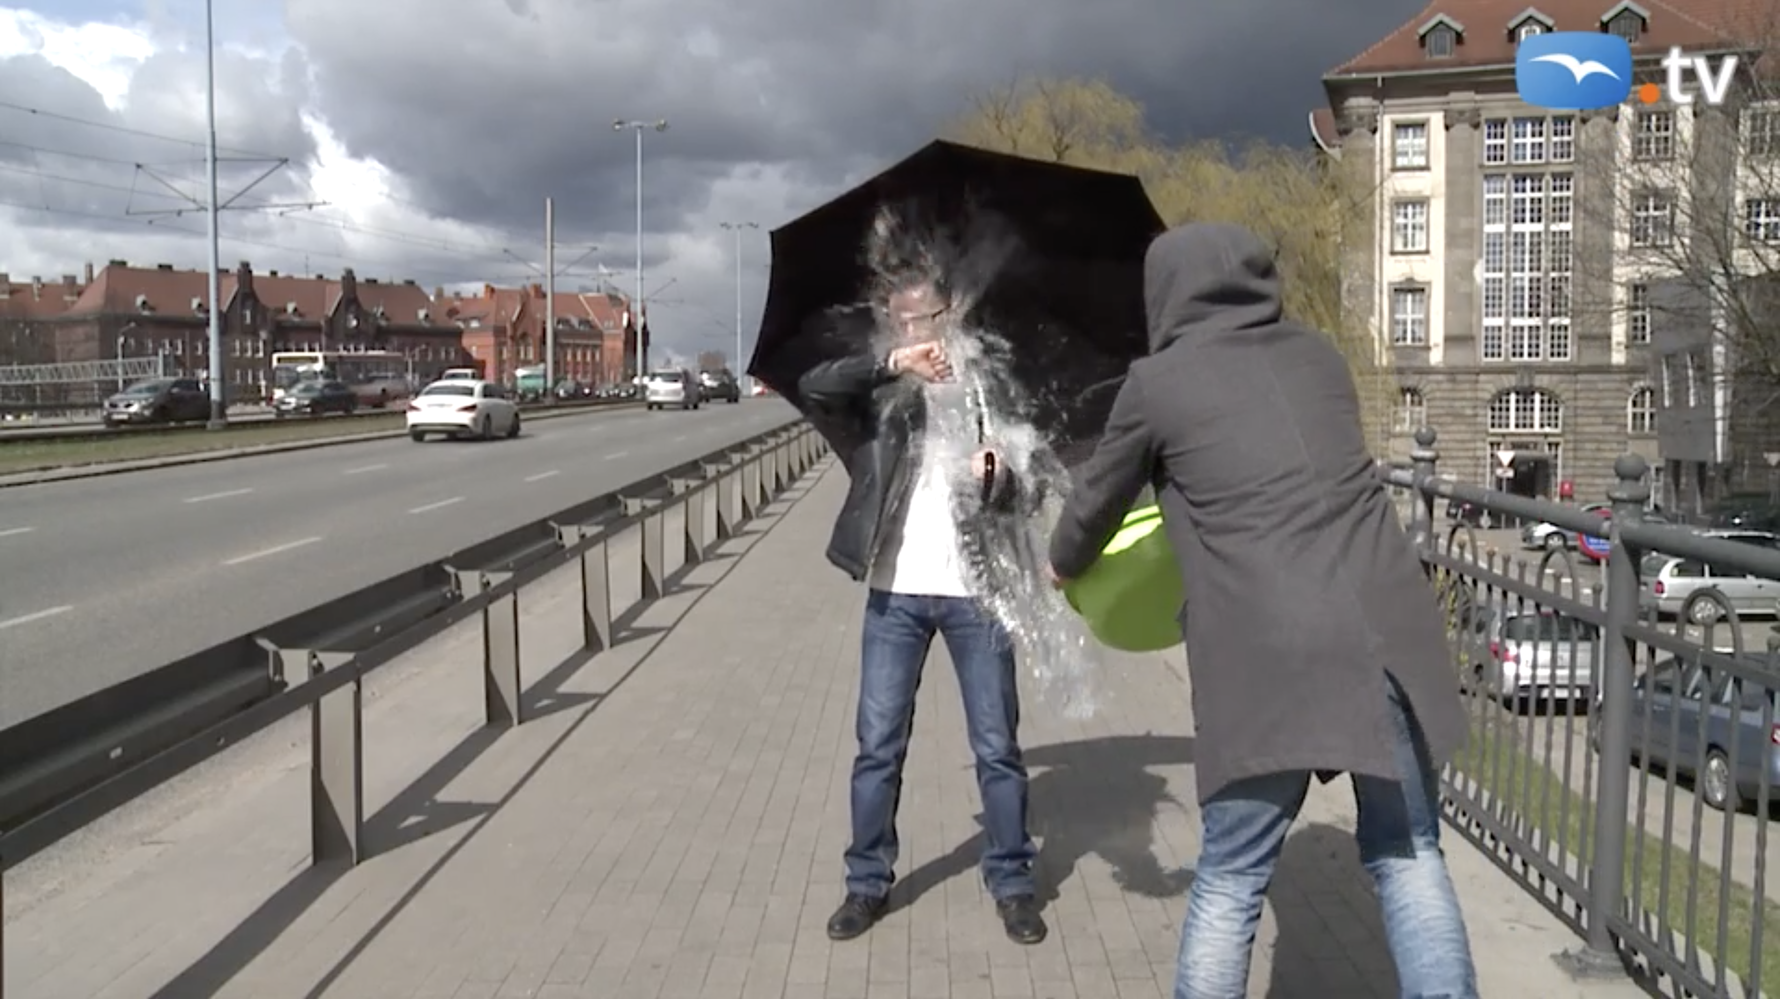 Trojmiasto TV Reporter Rafał Borowski being dunked with water in Gdańsk